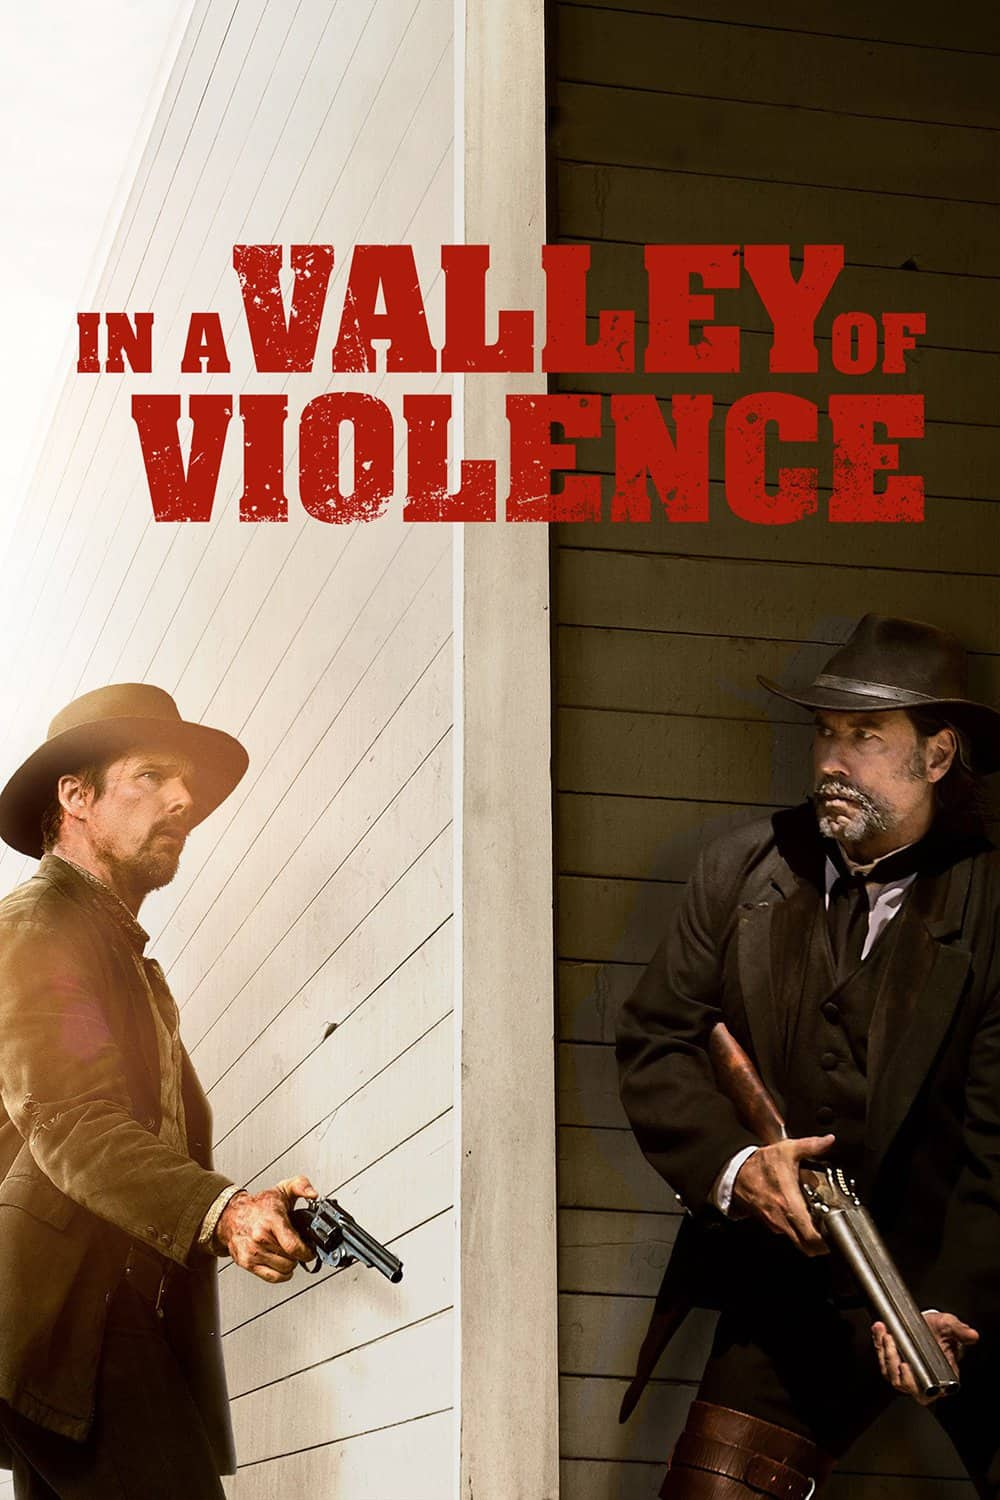 In a Valley of Violence, 2016